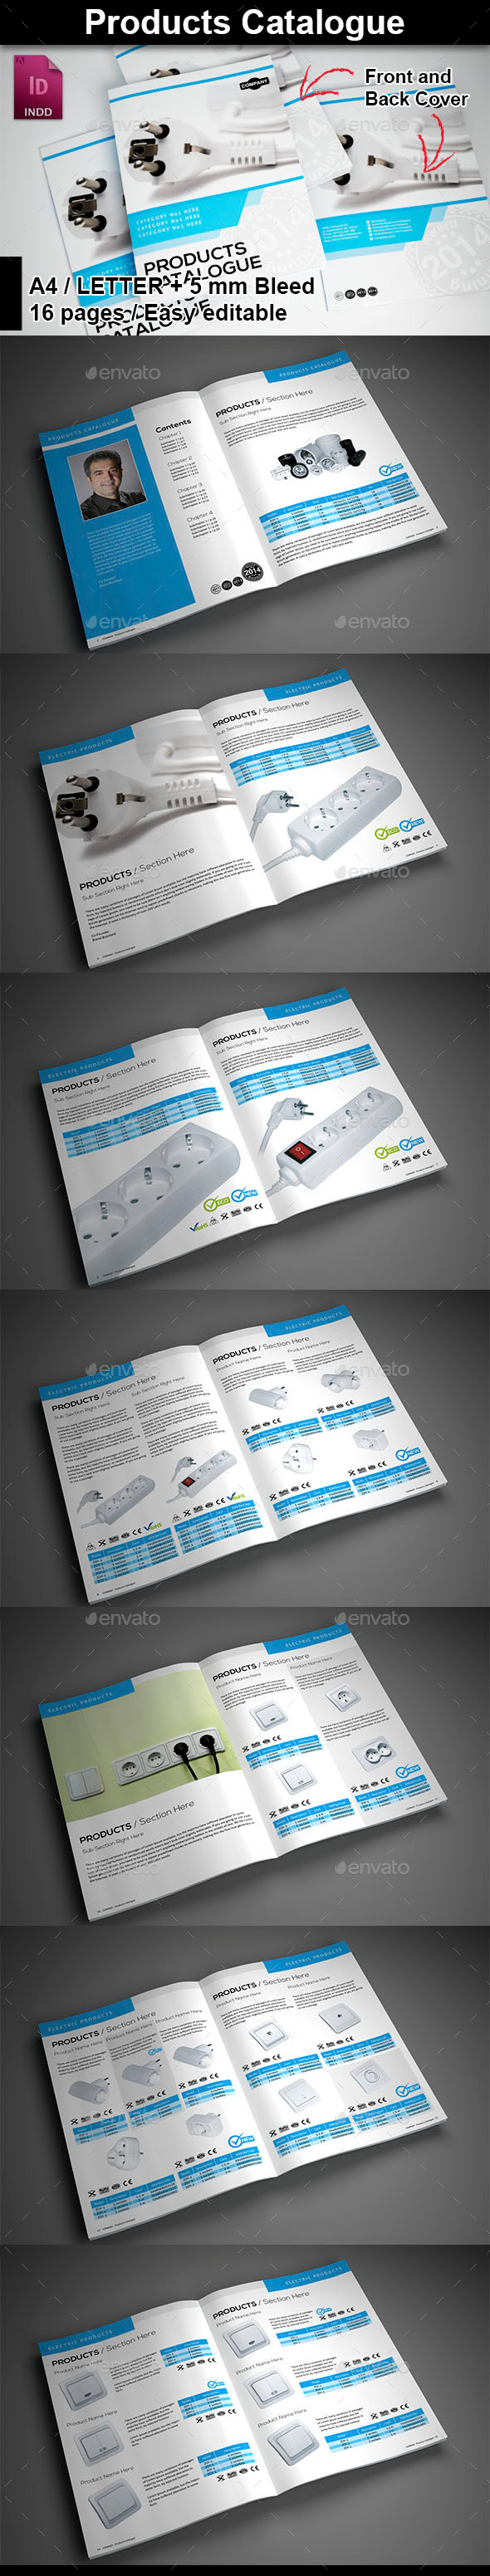 GraphicRiver Products Catalogue 9642362